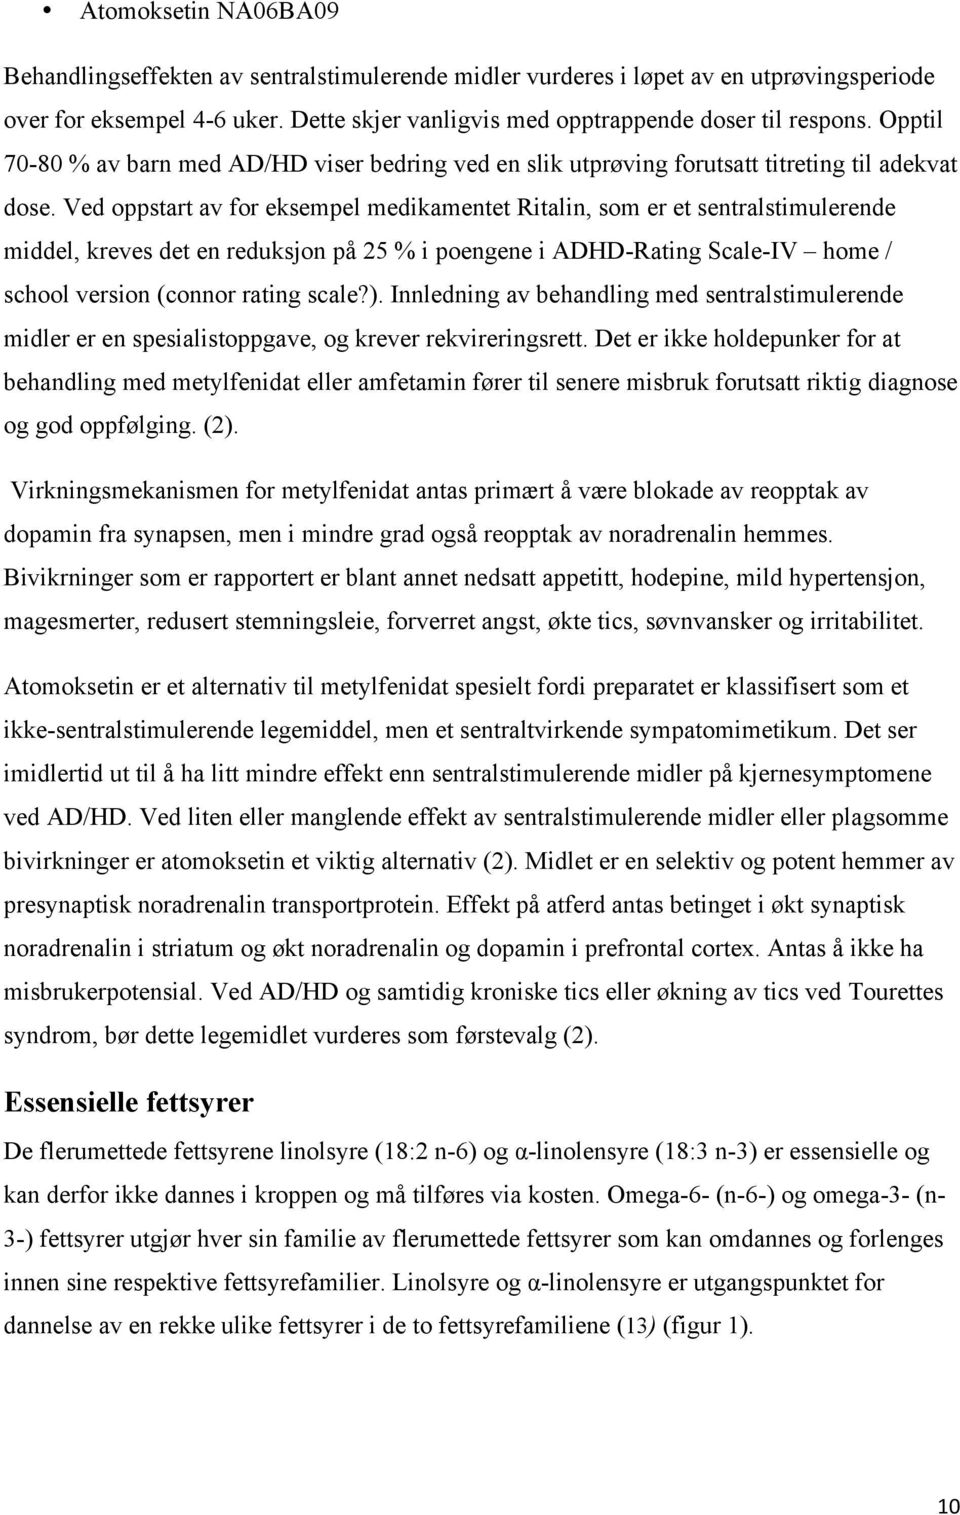 Ved oppstart av for eksempel medikamentet Ritalin, som er et sentralstimulerende middel, kreves det en reduksjon på 25 % i poengene i ADHD-Rating Scale-IV home / school version (connor rating scale?).